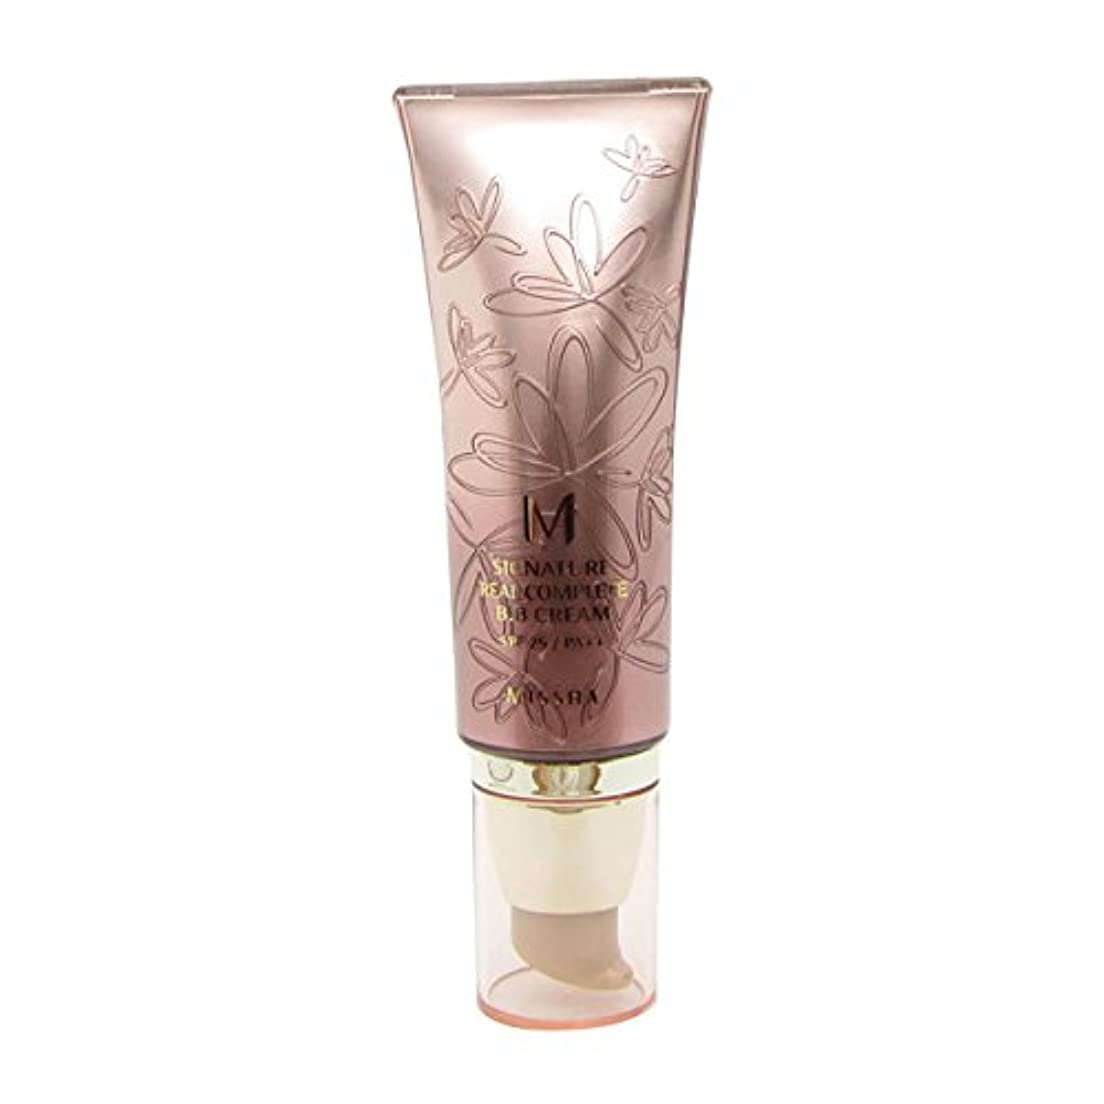 チャンバー教傷つきやすいMissha Signature Real Complete Bb Cream Fps25/pa++ No.13 Light Milky Beige 45g [並行輸入品]